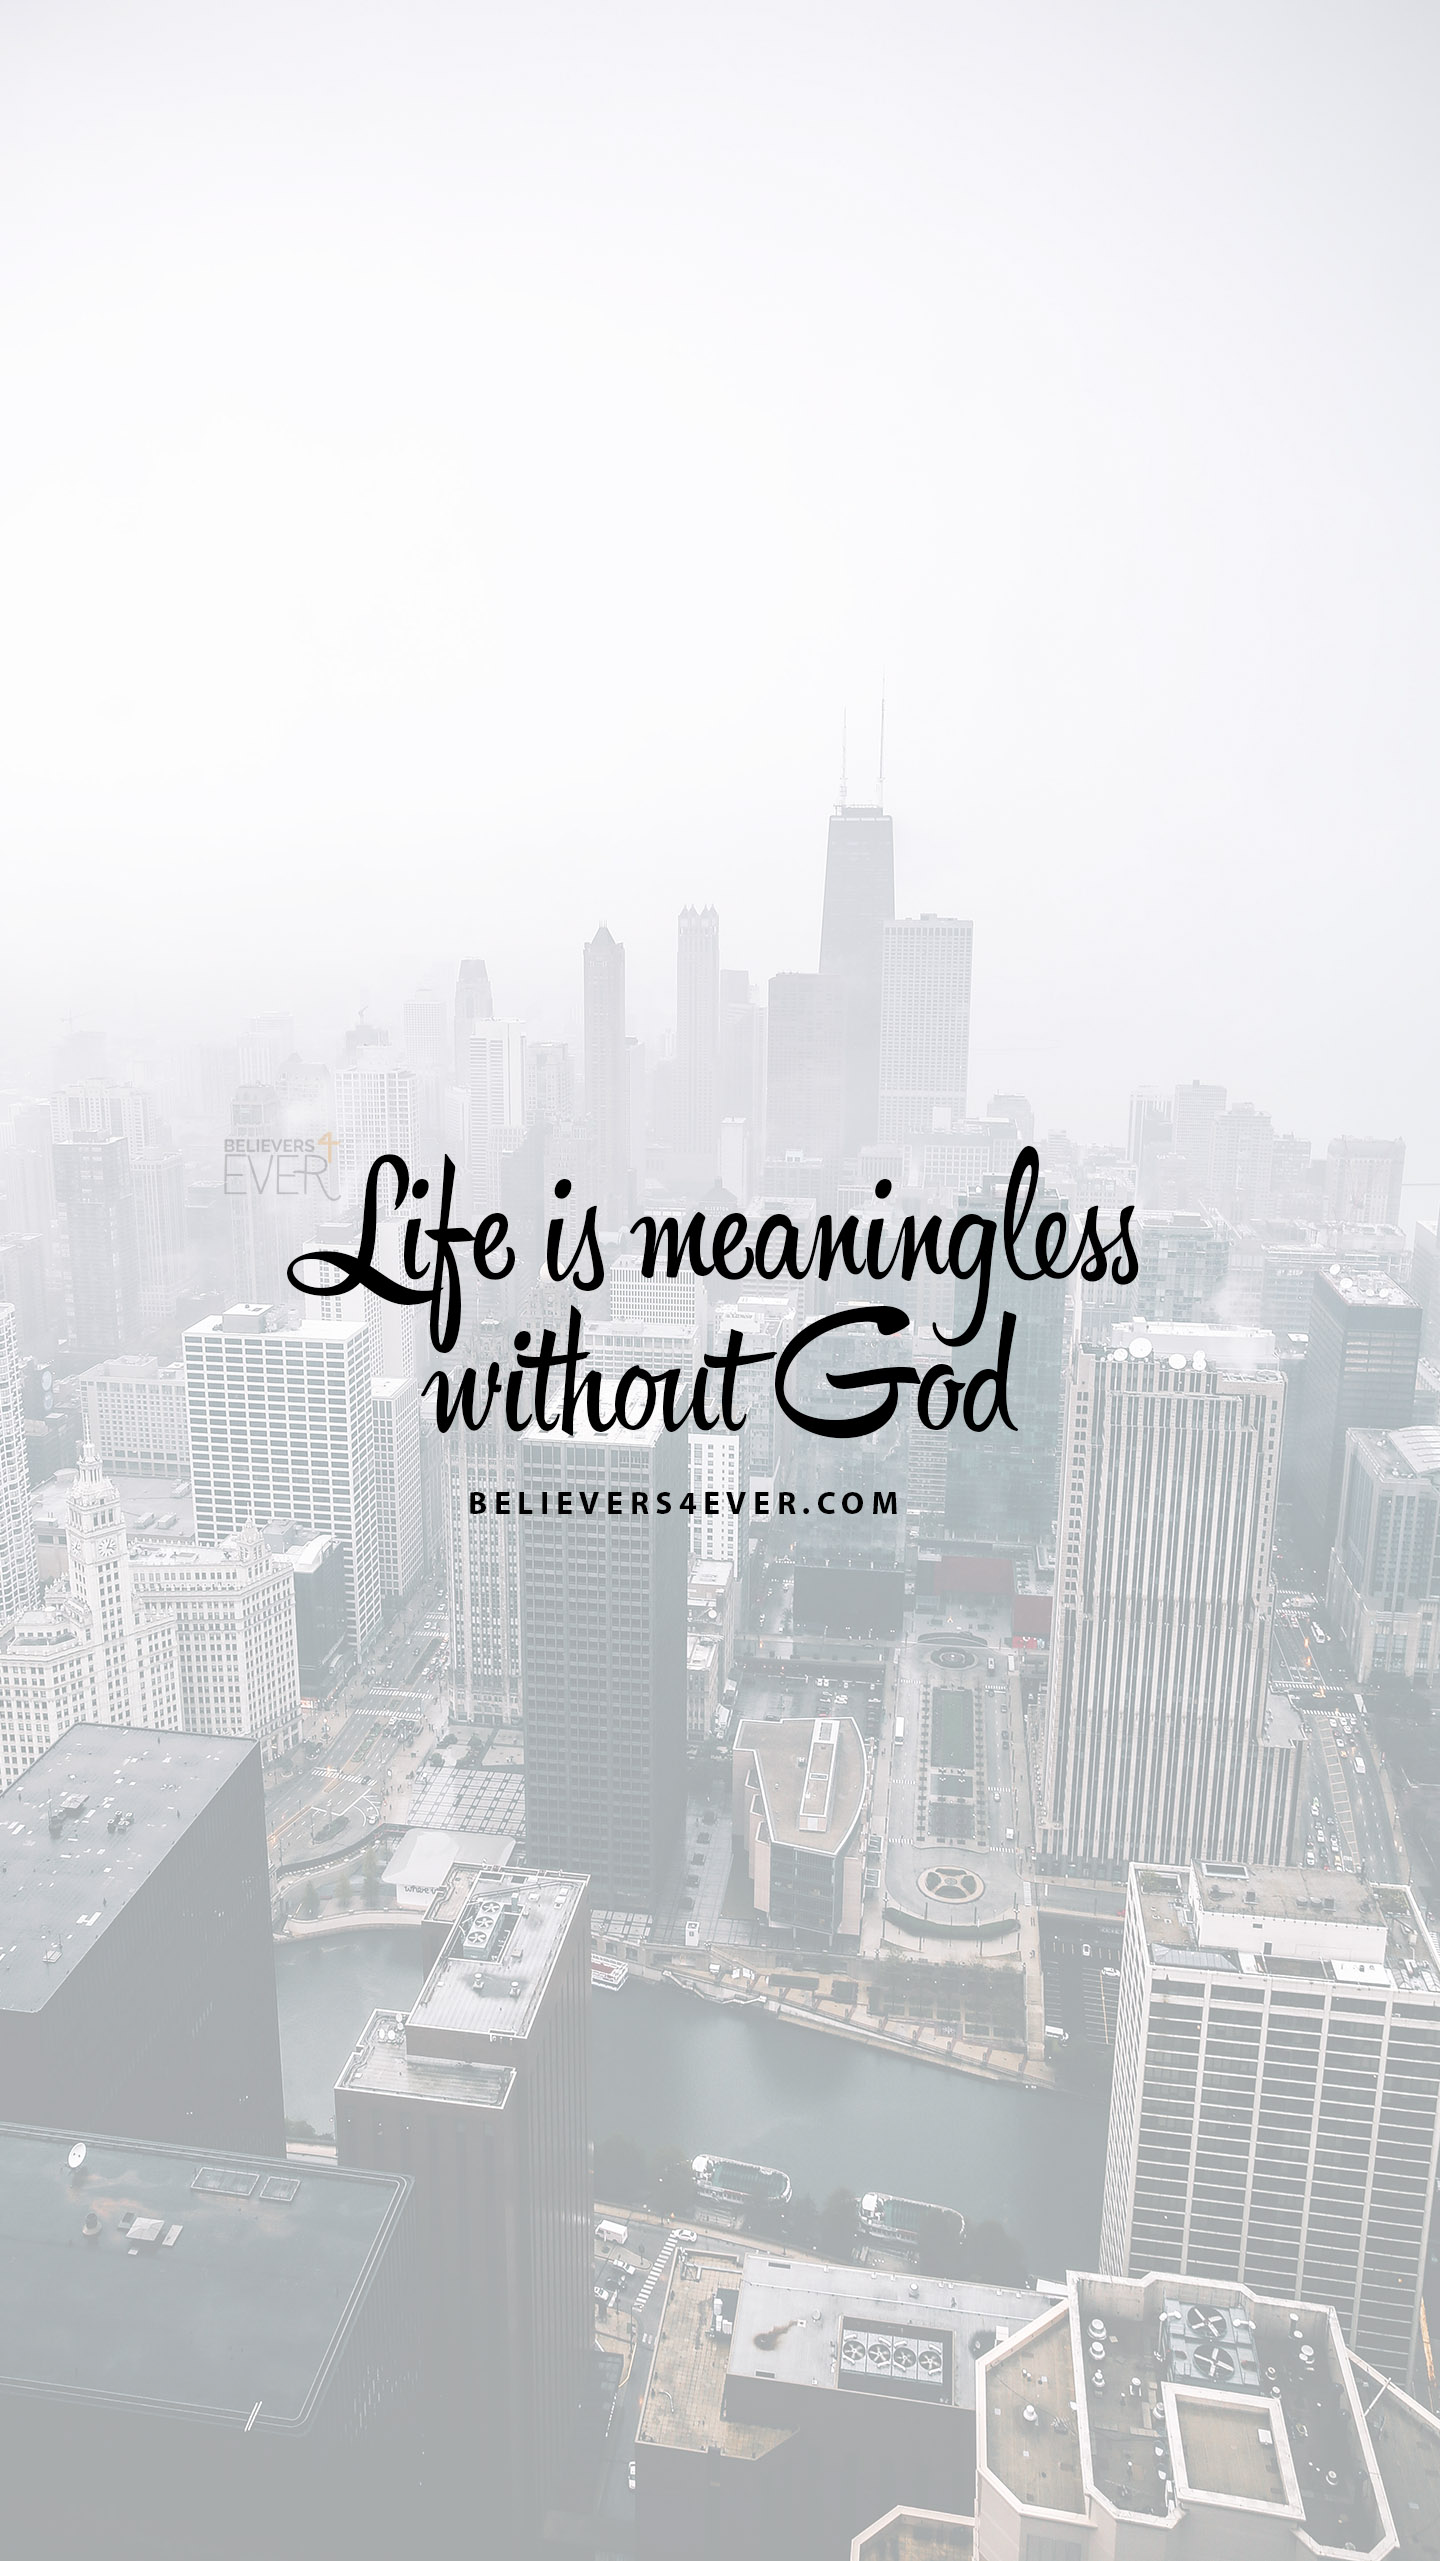 Life is meaningless without God mobile wallpaper